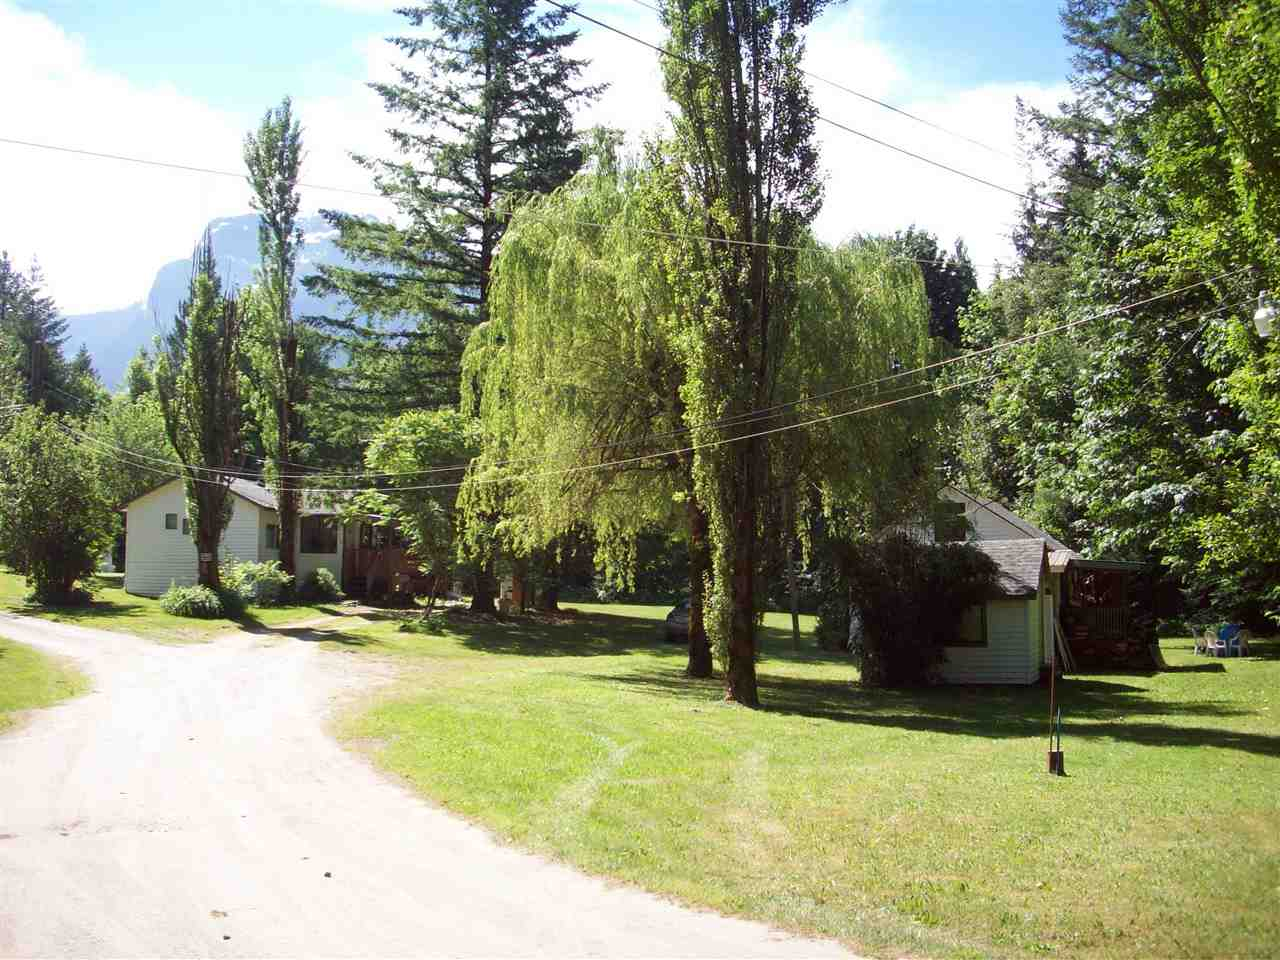 Good value here. Your own little private valley. Unique property 8.5 acres with no neighbours. Just before the Lake Of The Woods and only 5 mins to Hope town center. Very private area with large fir and maple trees and large lawn area. Park like setting. Has 6 rental homes on property, 1 - 3 bedroolm, 2 - 2bdrm, and 3- 1 bdrm, with 3 out buildings and 32 x 30 2 bay shop. All units are rented, never any vacancies. Gross monthly income $4,400.